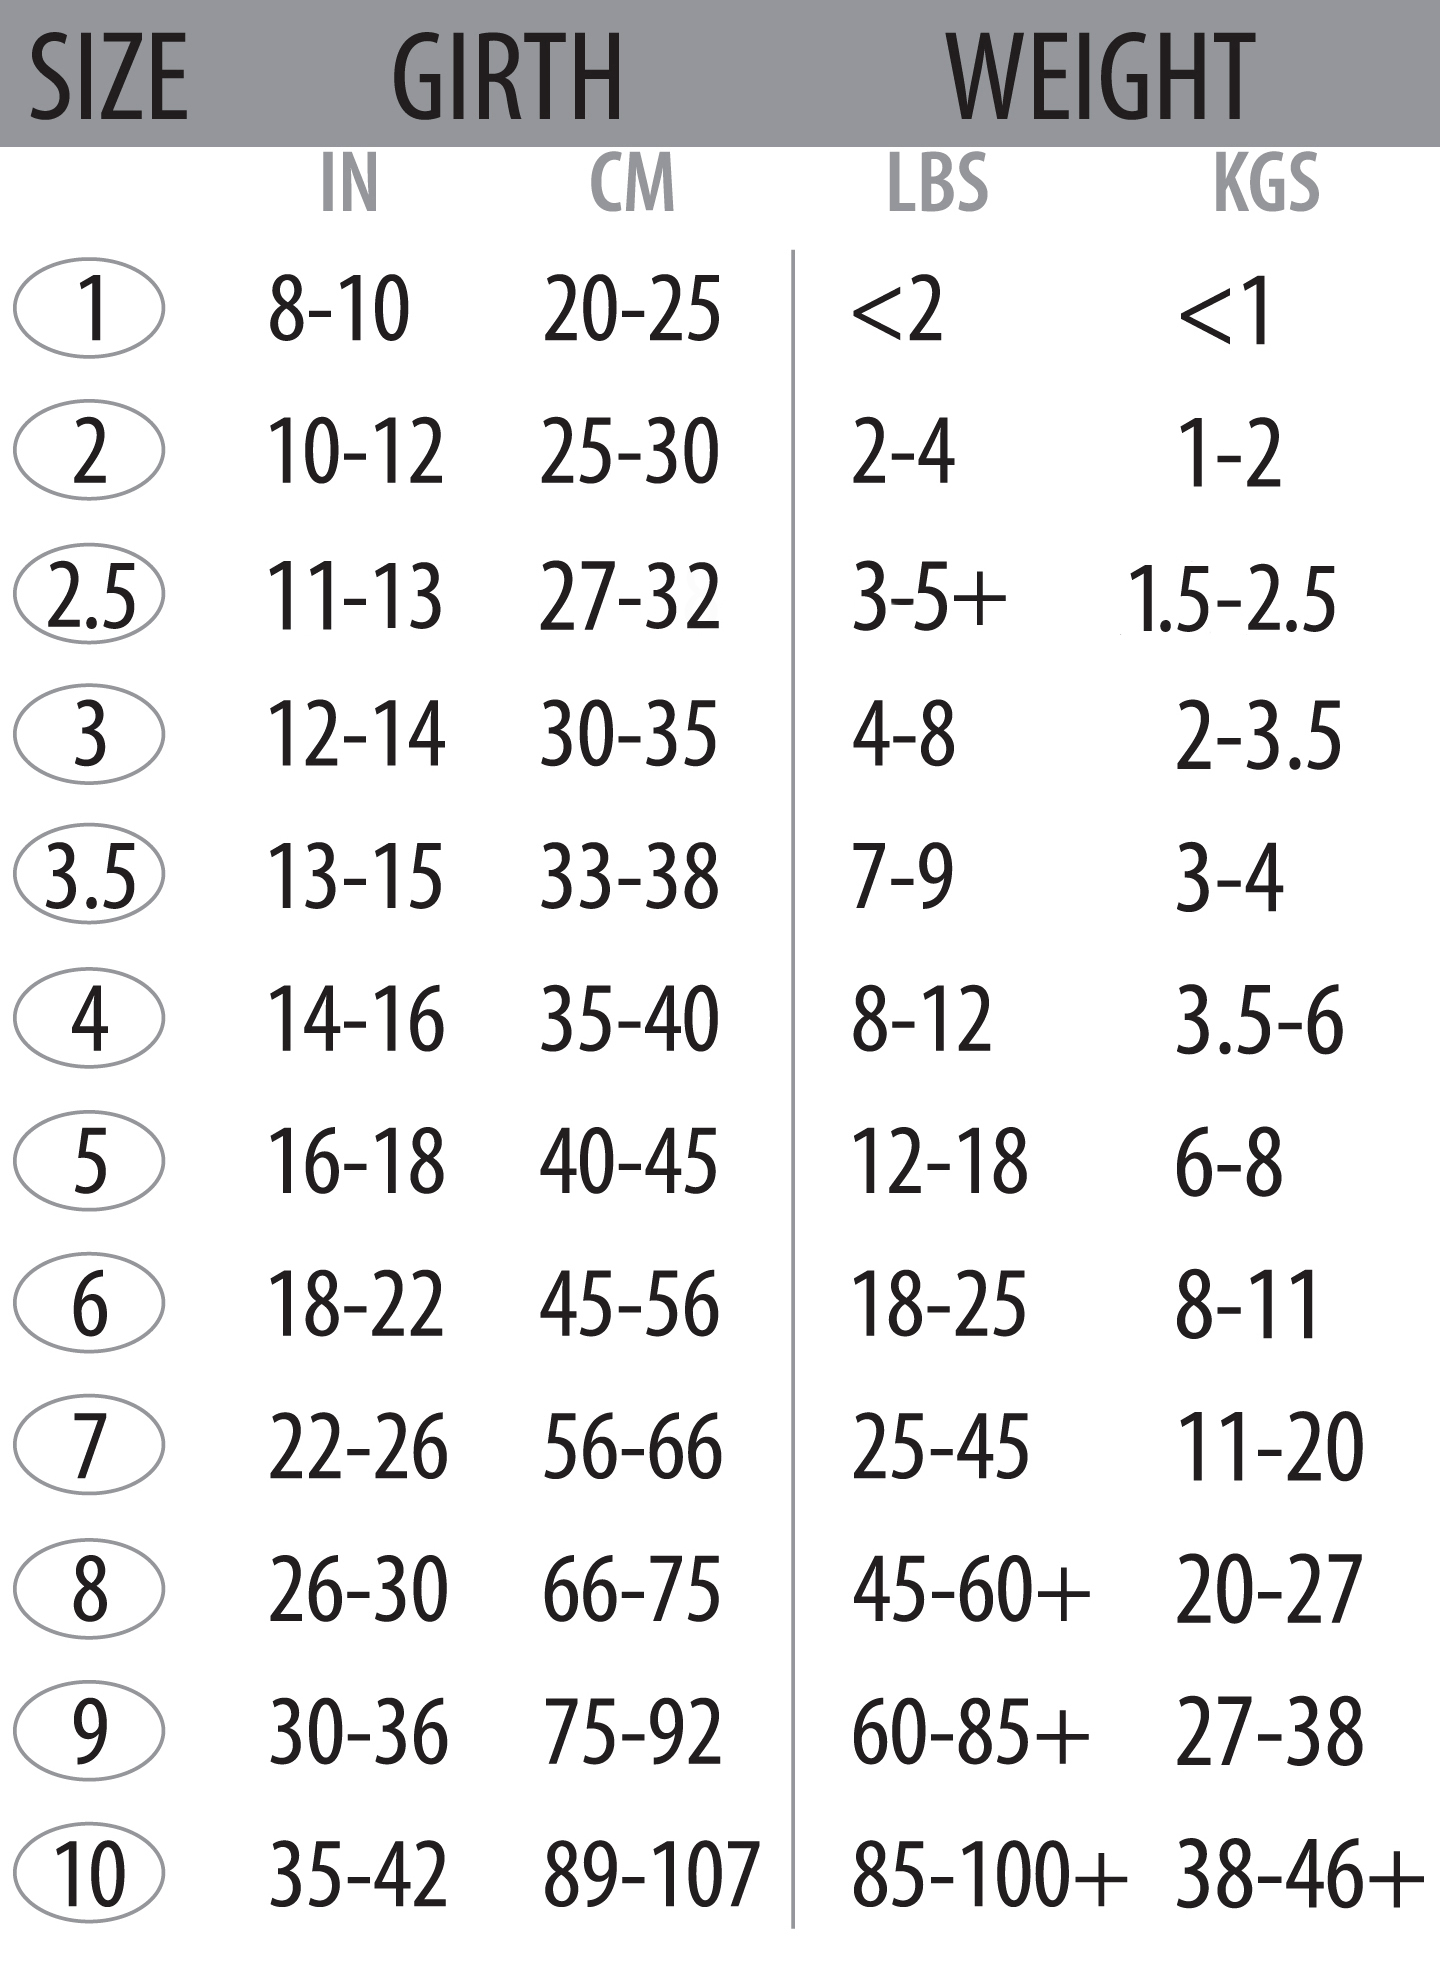 bb-sizing-chart-1-10.png